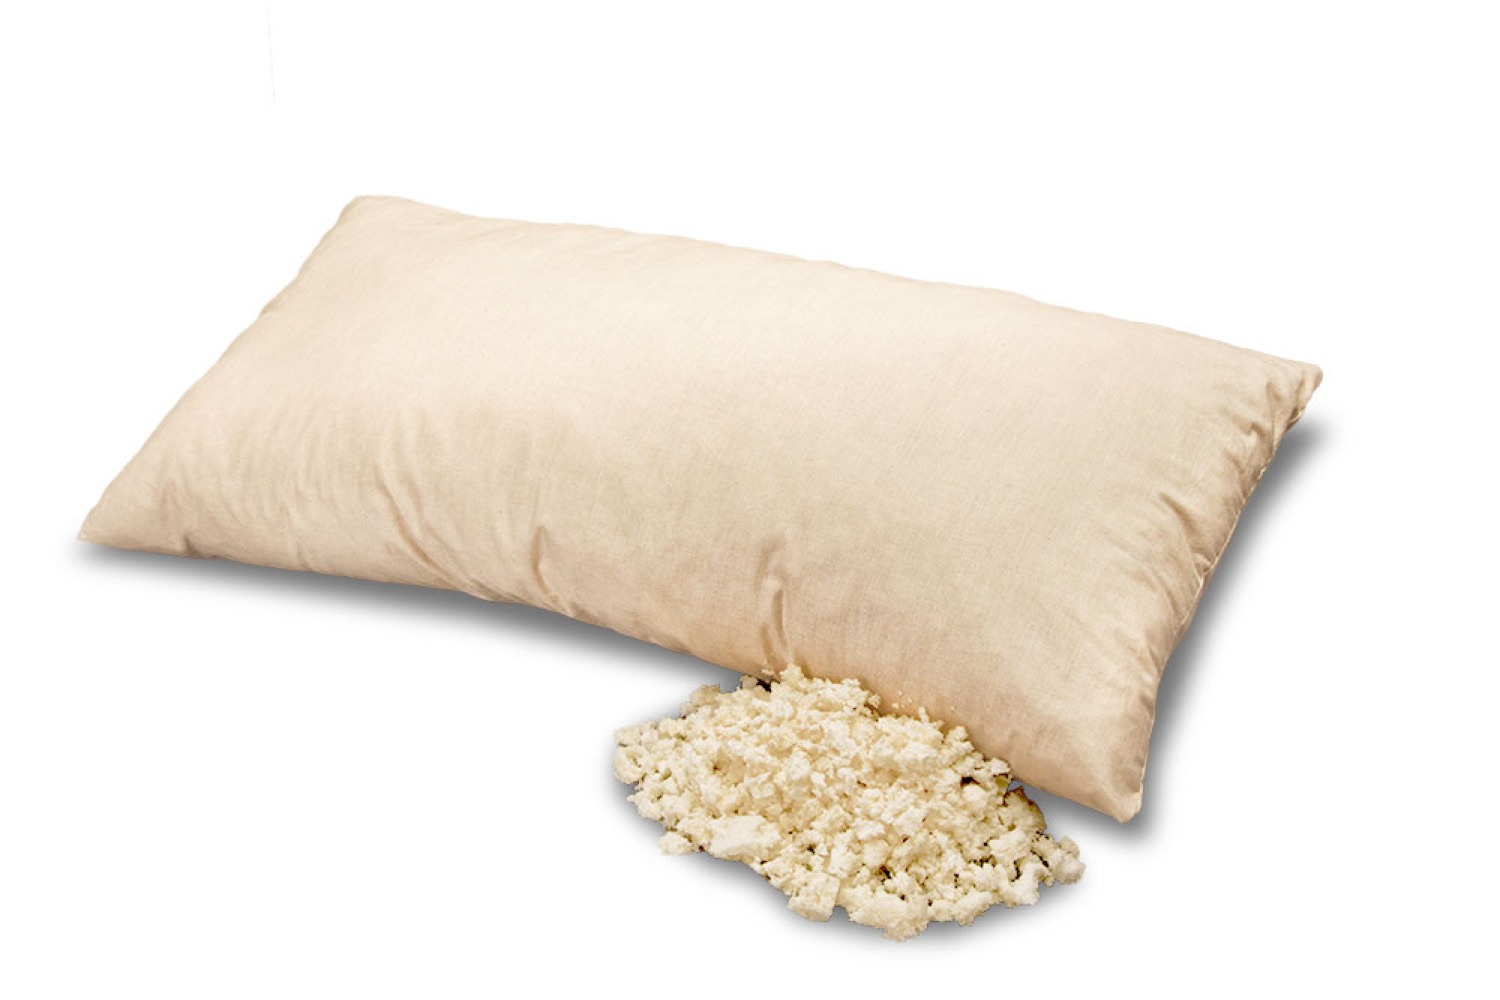 Pillow Filled with Latex Flakes 40 x 80 cm